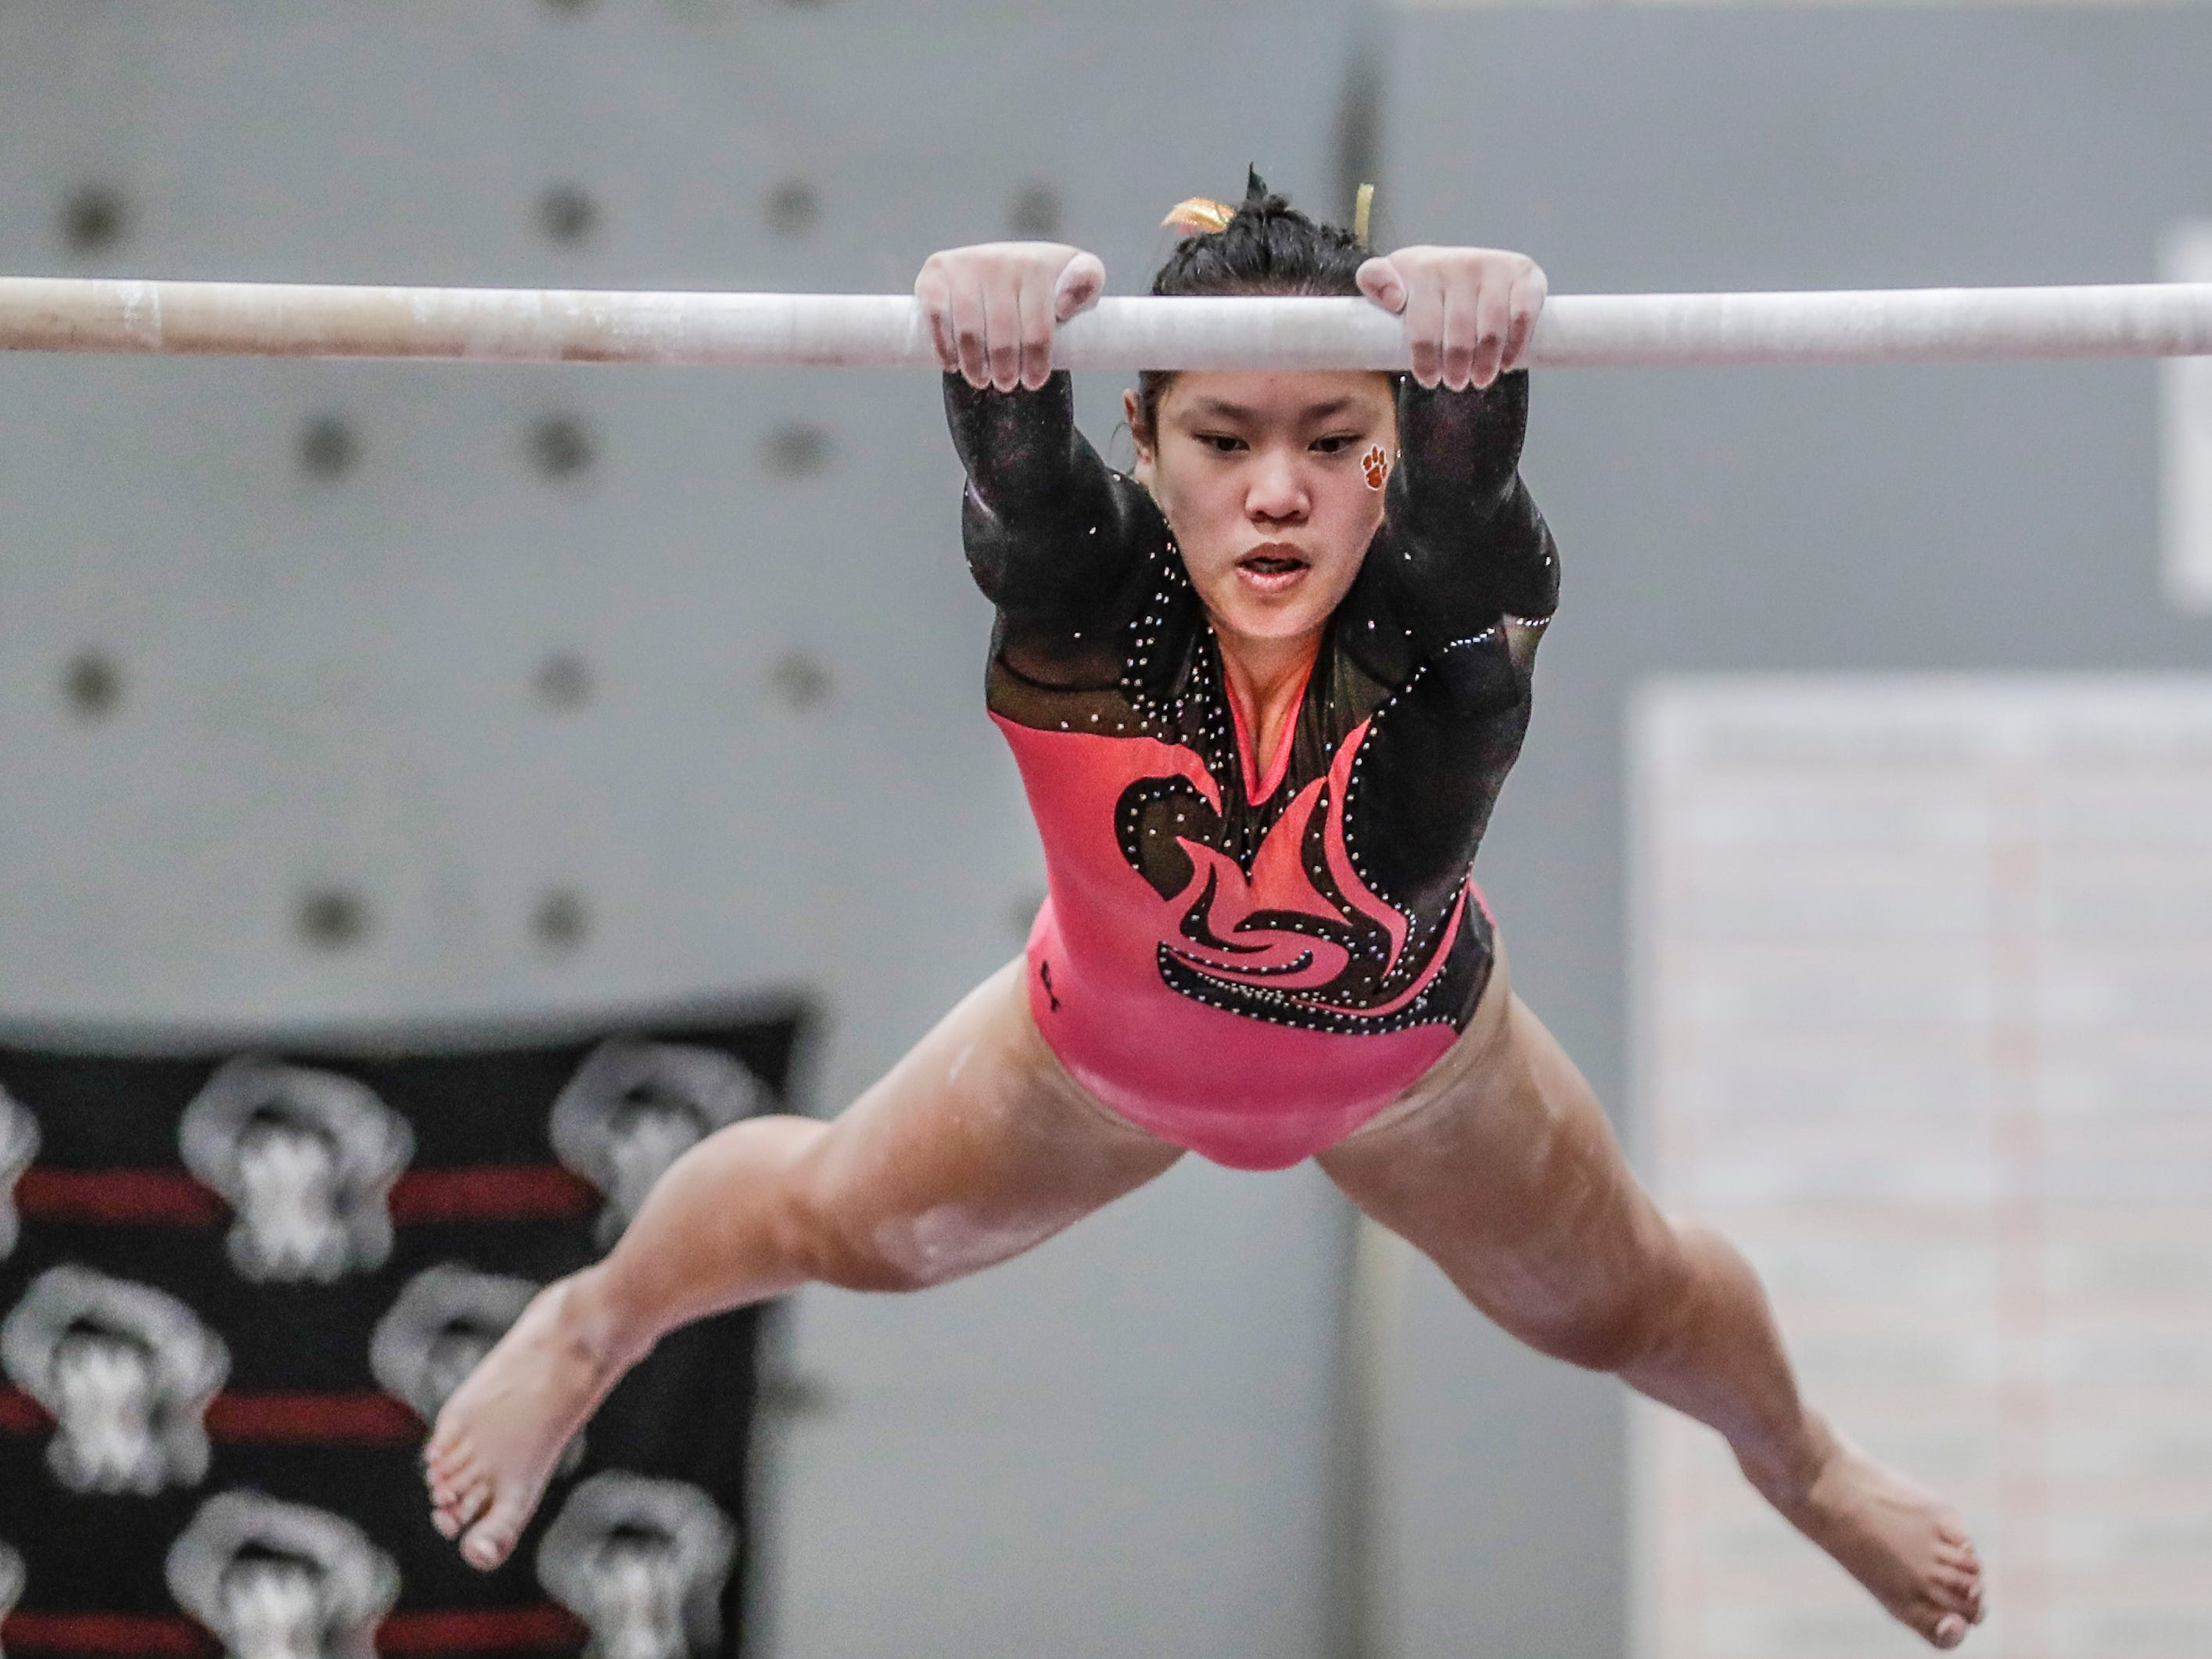 Marshfield's Hanna Merkel competes in the uneven parallel bars during WIAA state gymnastics competition Friday, March 1, 2019, at Lincoln High School Field House in Wisconsin Rapids, Wis. T'xer Zhon Kha/USA TODAY NETWORK-Wisconsin